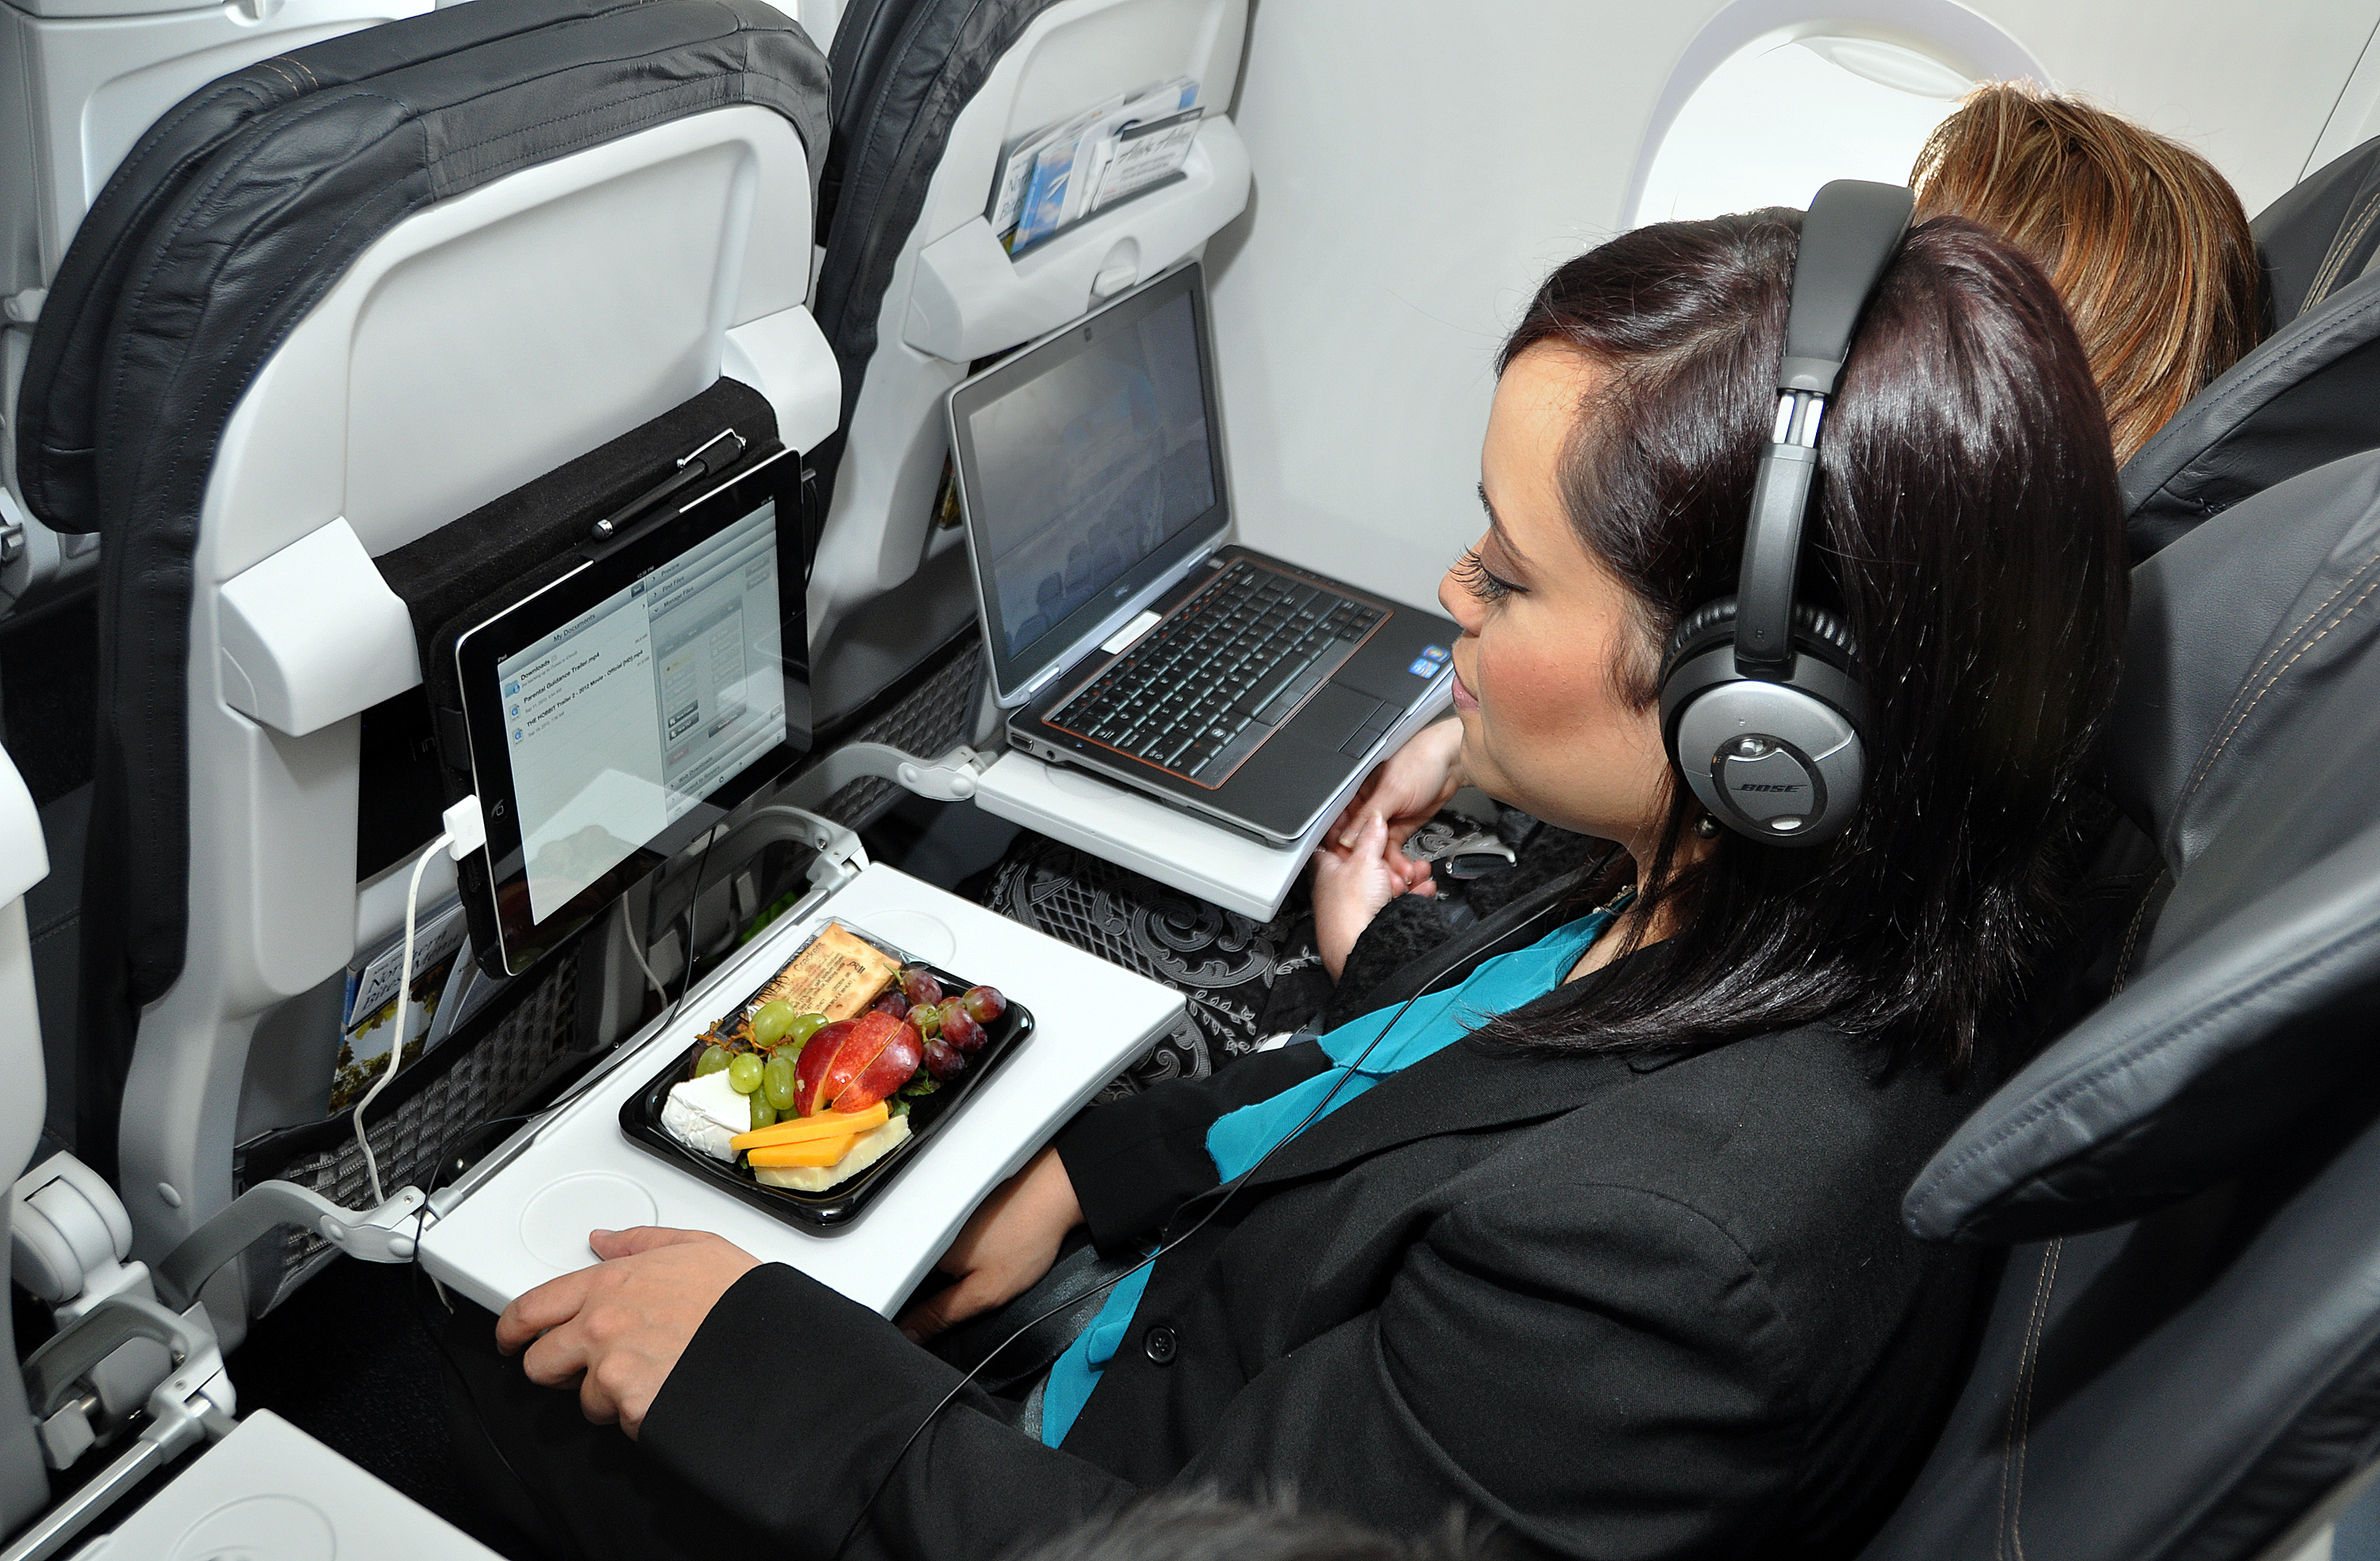 Alaska Airlines Making Mobile/Laptop Chargers Standard Seat Feature